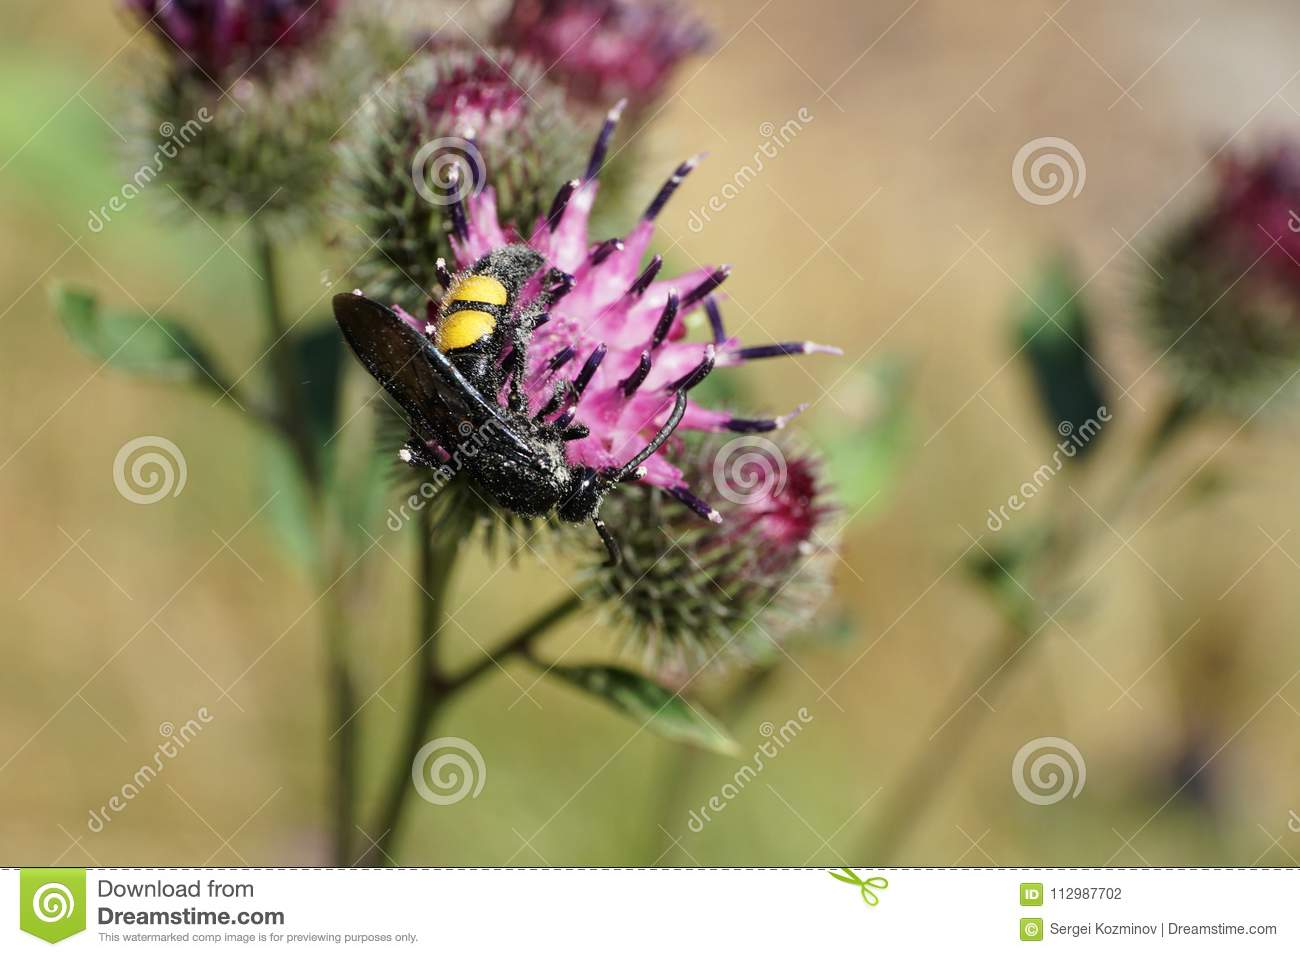 Macro of a hanging Caucasian wasp Scolia hirta on a flower thistle